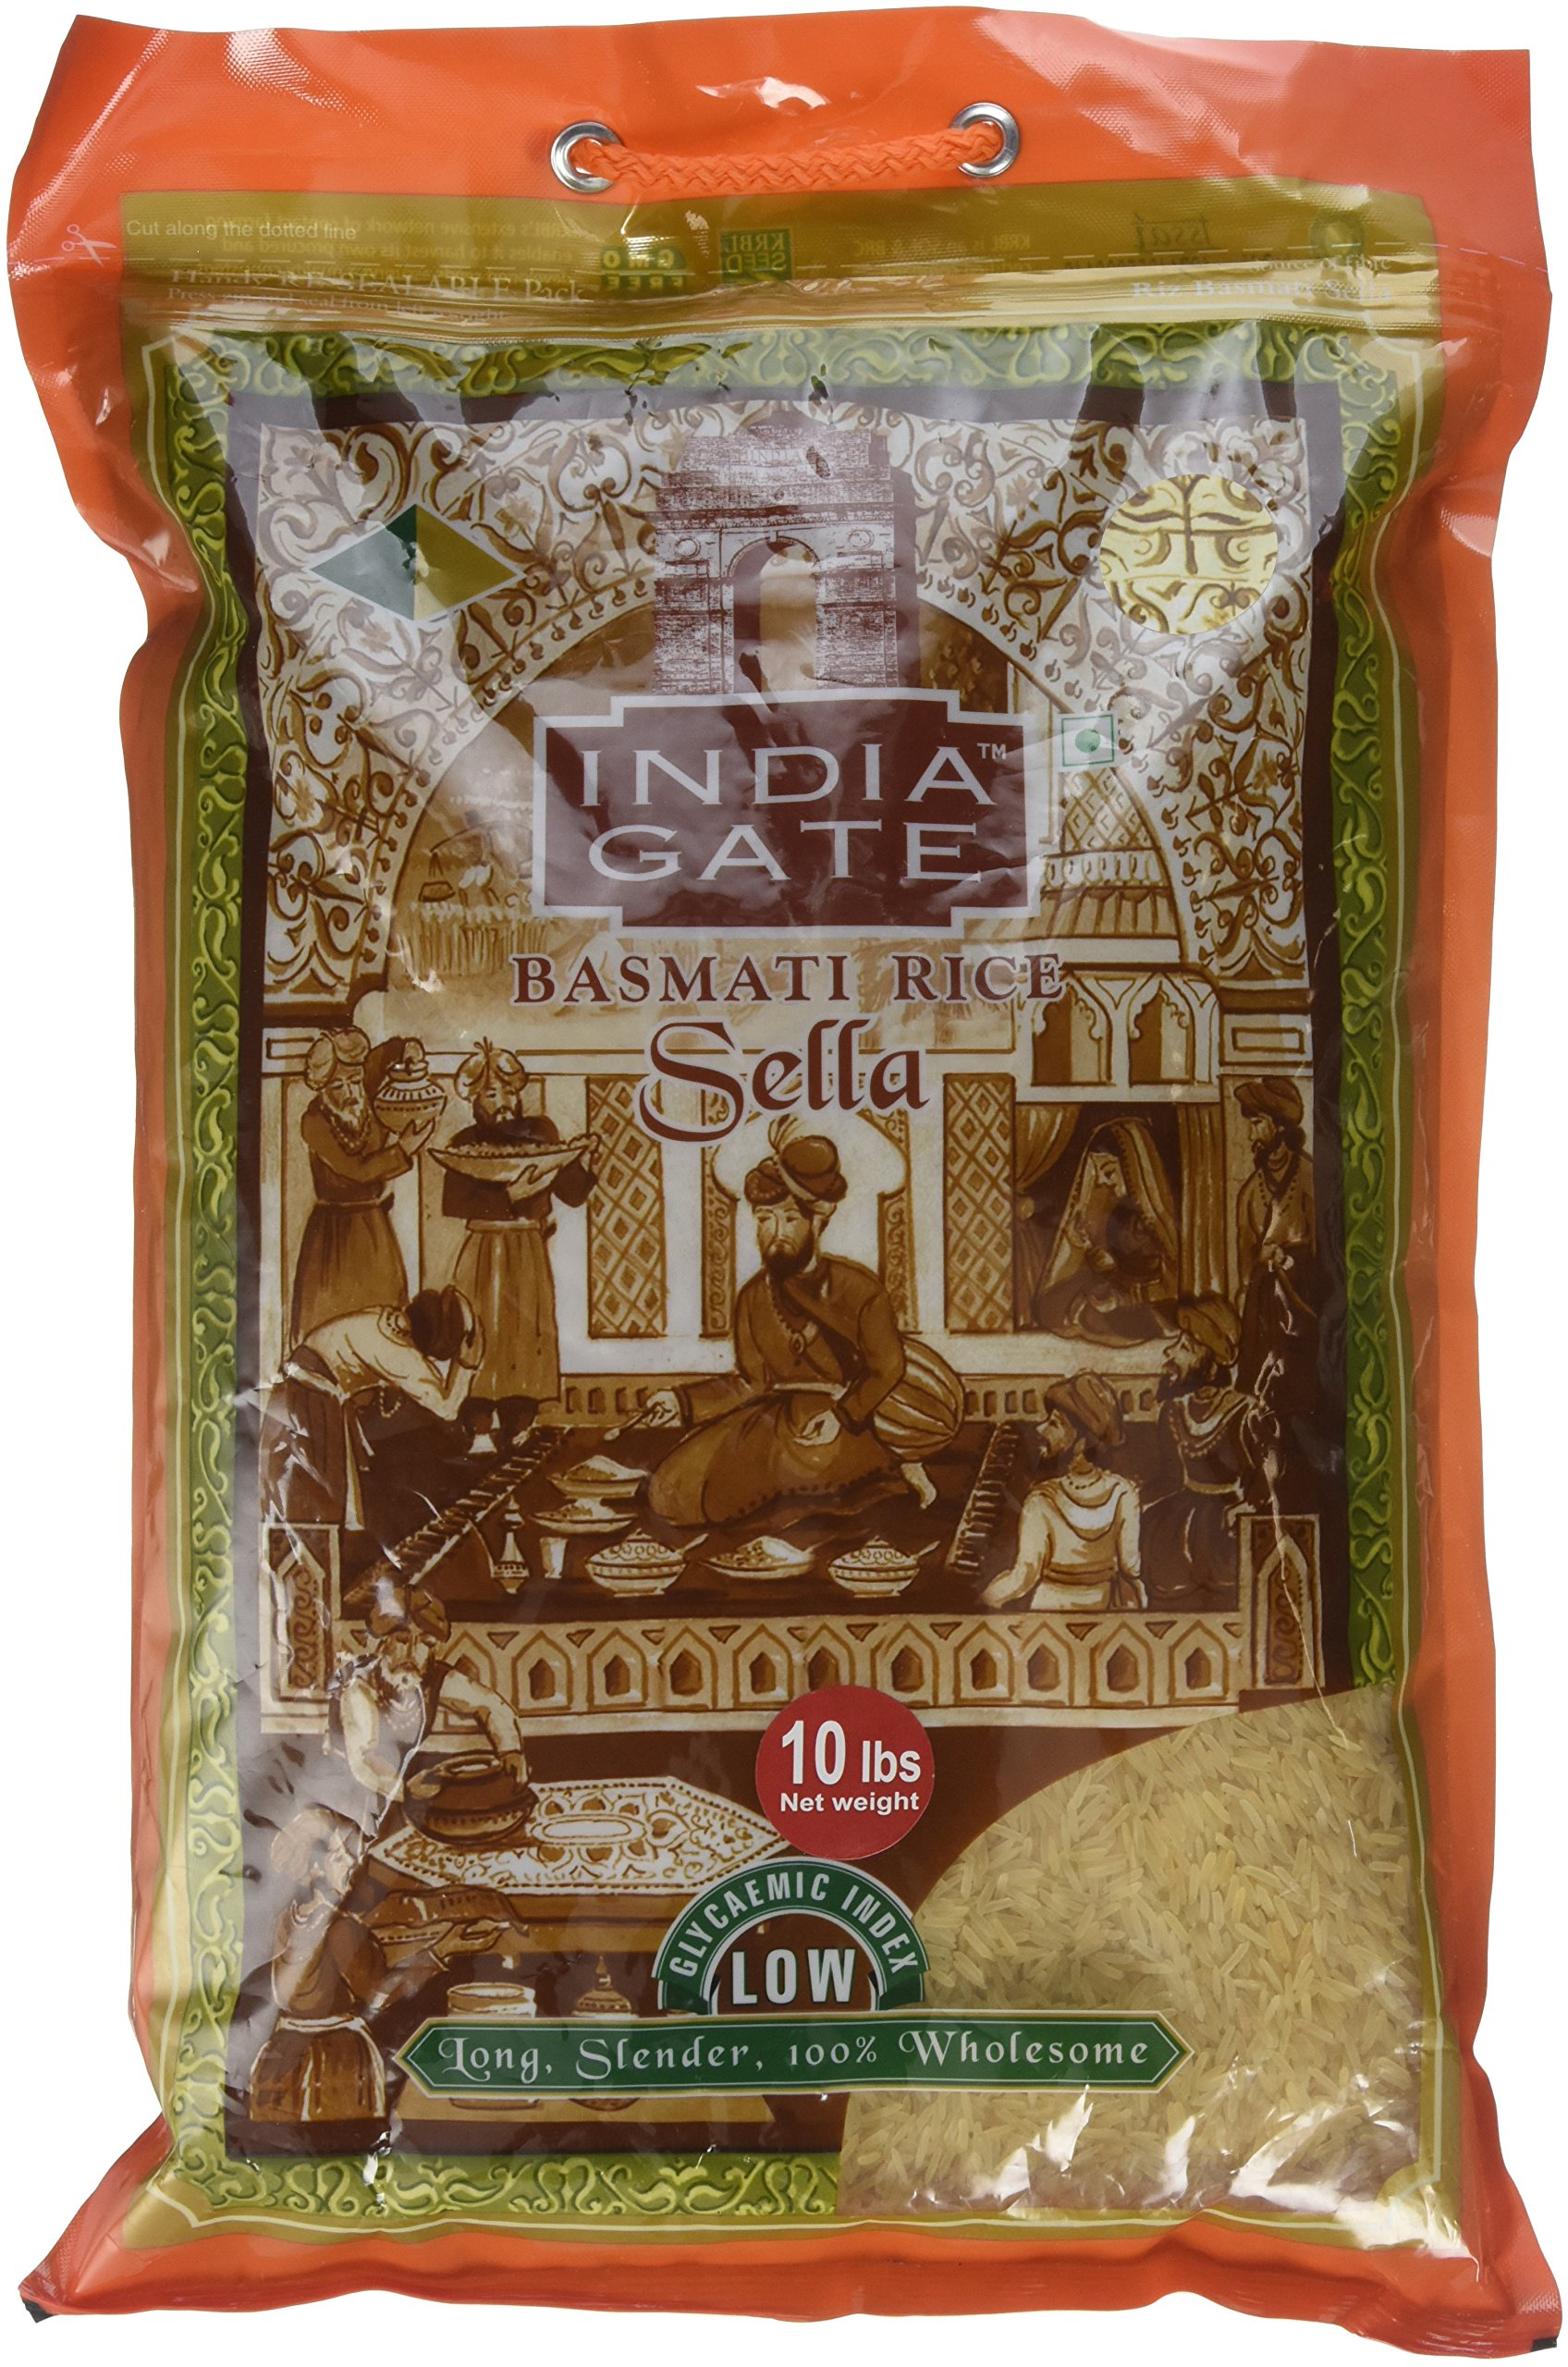 India Gate Parboiled Basmati Rice Bag, Golden Sella, 10 pounds